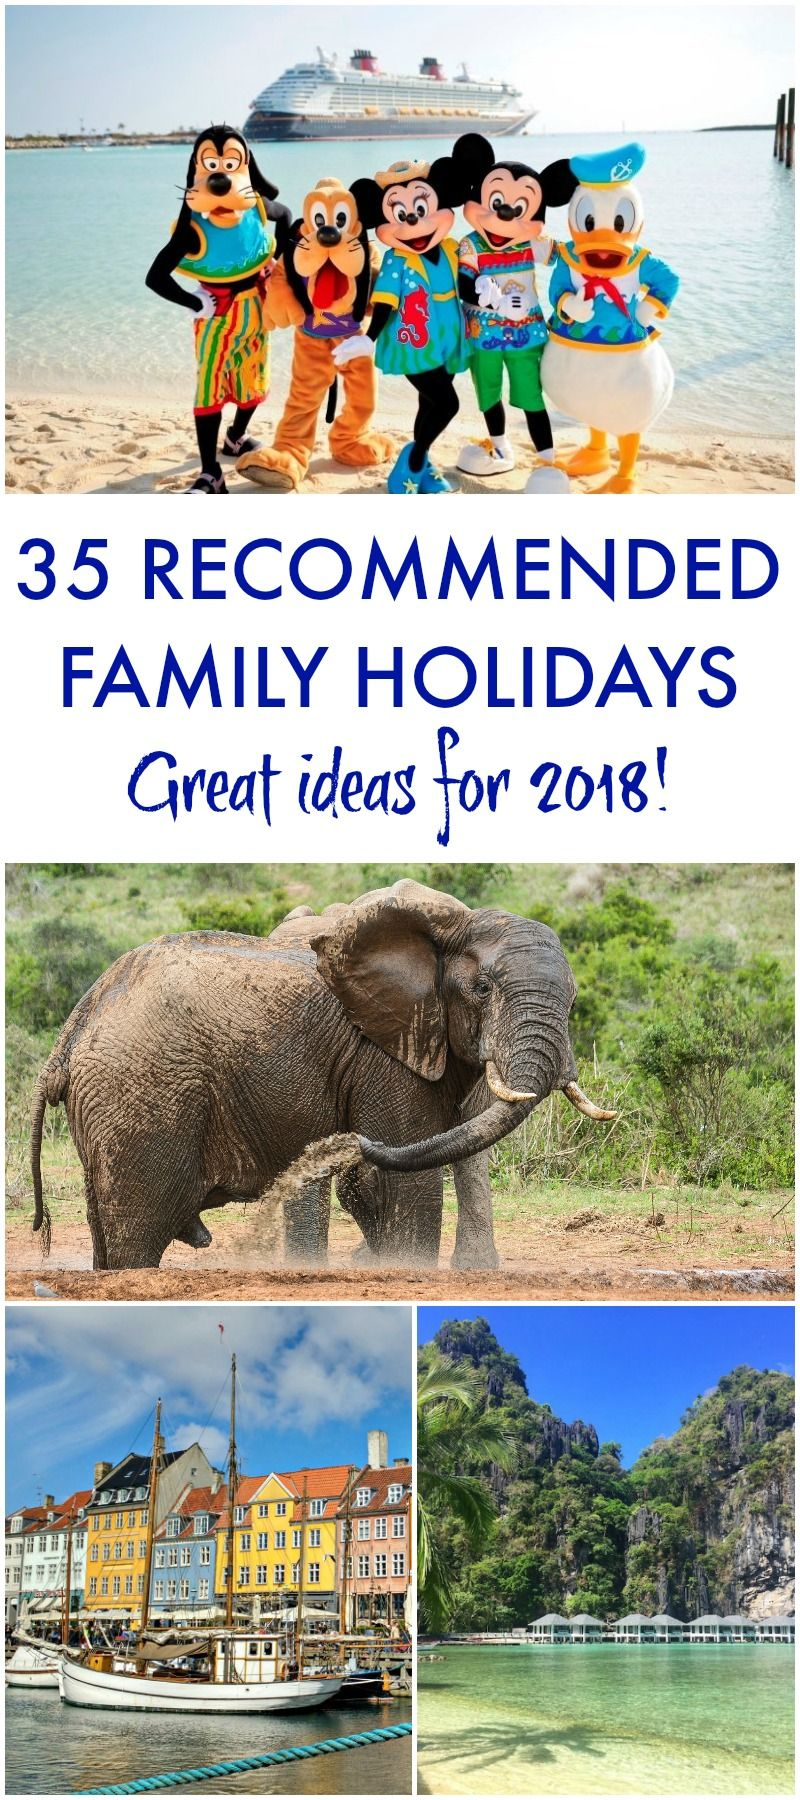 I've asked 35 world leading family travel bloggers to share their